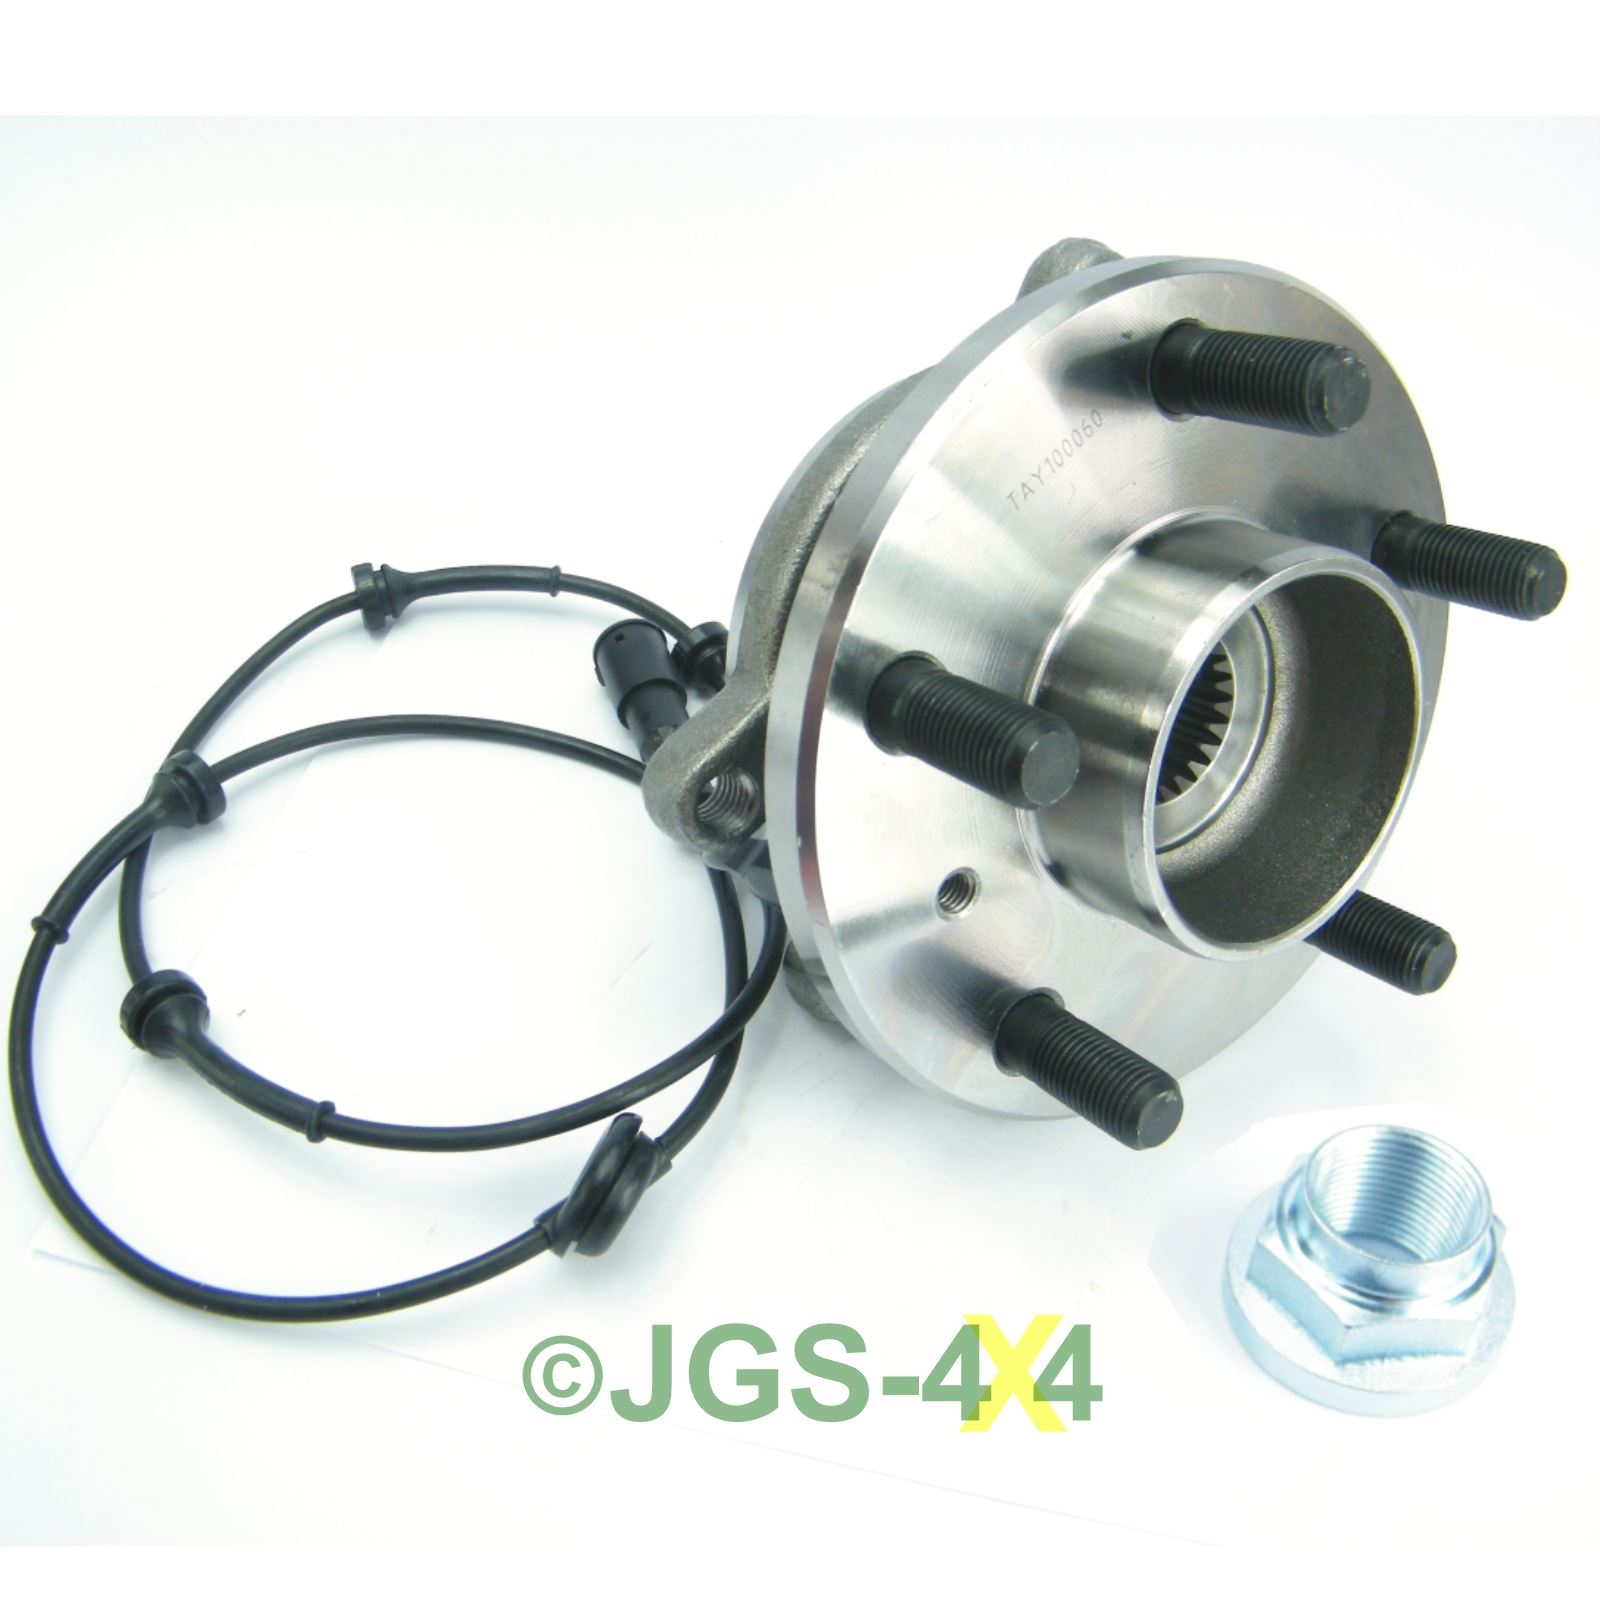 Land Rover Discovery 2 Range Rover P38 Rear Lhs N S: Land Rover Discovery 2 Front Wheel Bearing Hub Assembly